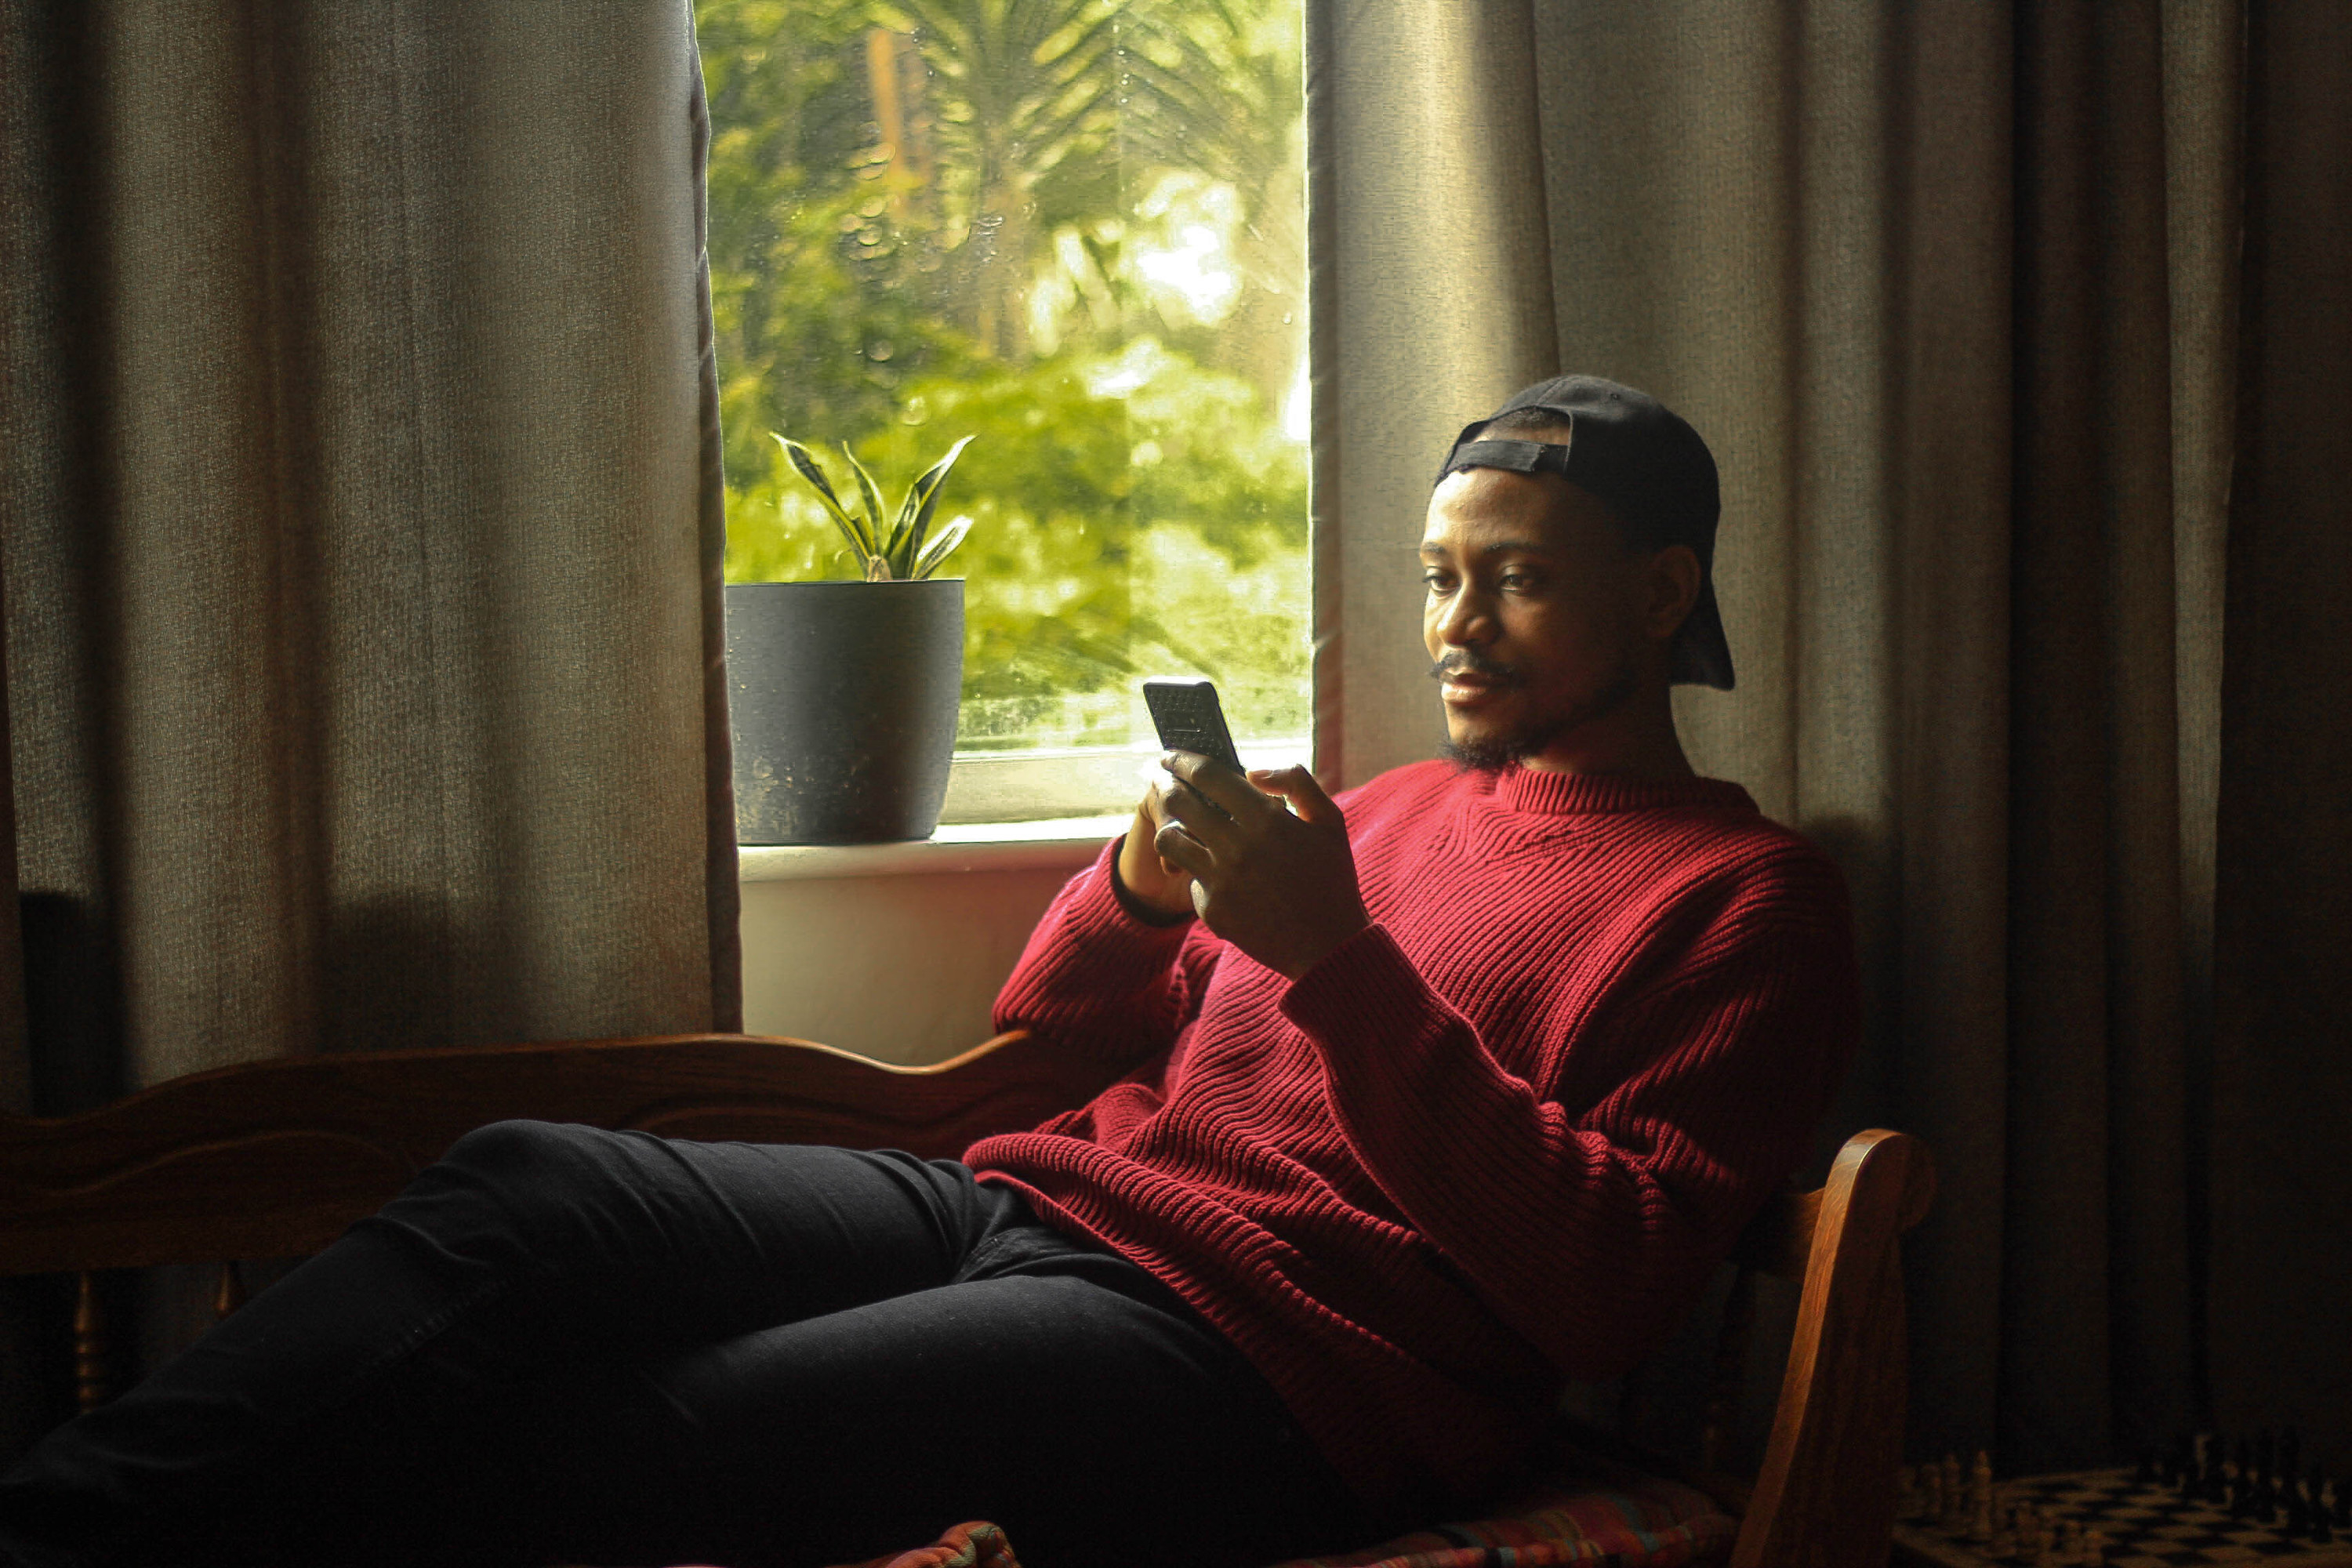 A guy with a backwards cap, sweater, and pants, lounging by a window looking at his phone